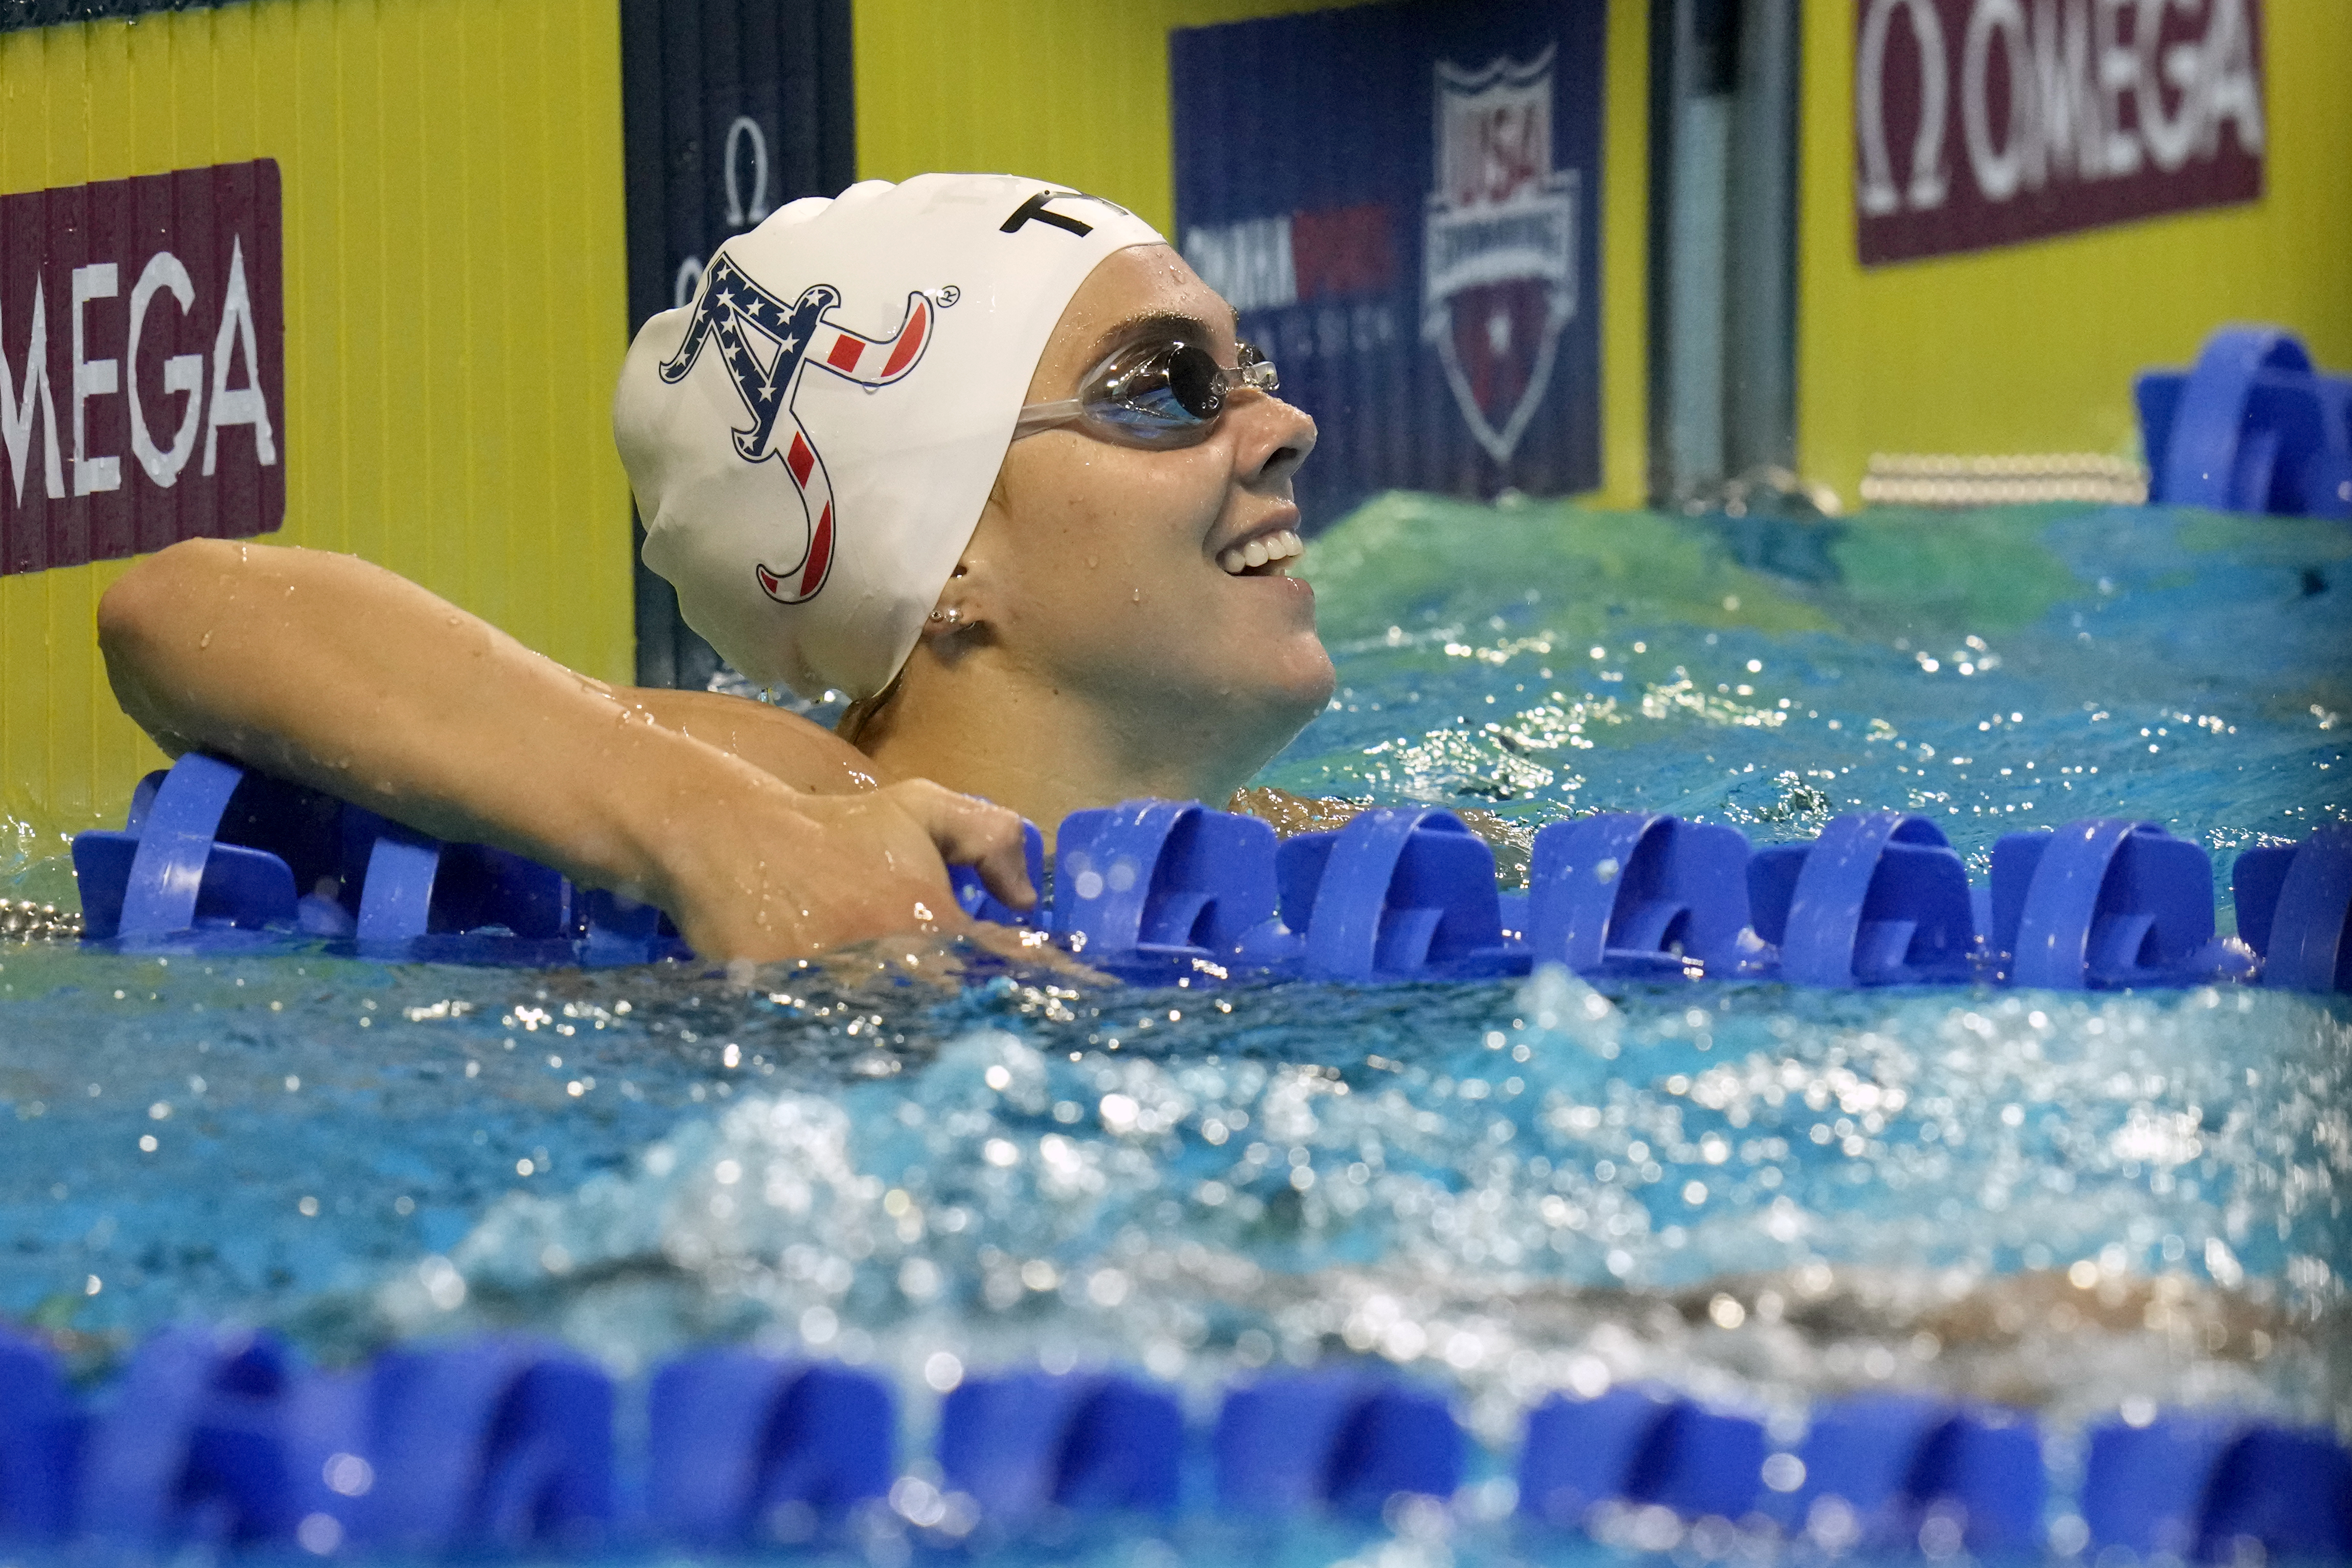 Rhyan White smiles after the women's 200-meter backstroke during wave 2 of the U.S. Olympic Swim Trials on Saturday, June 19, 2021, in Omaha, Neb.